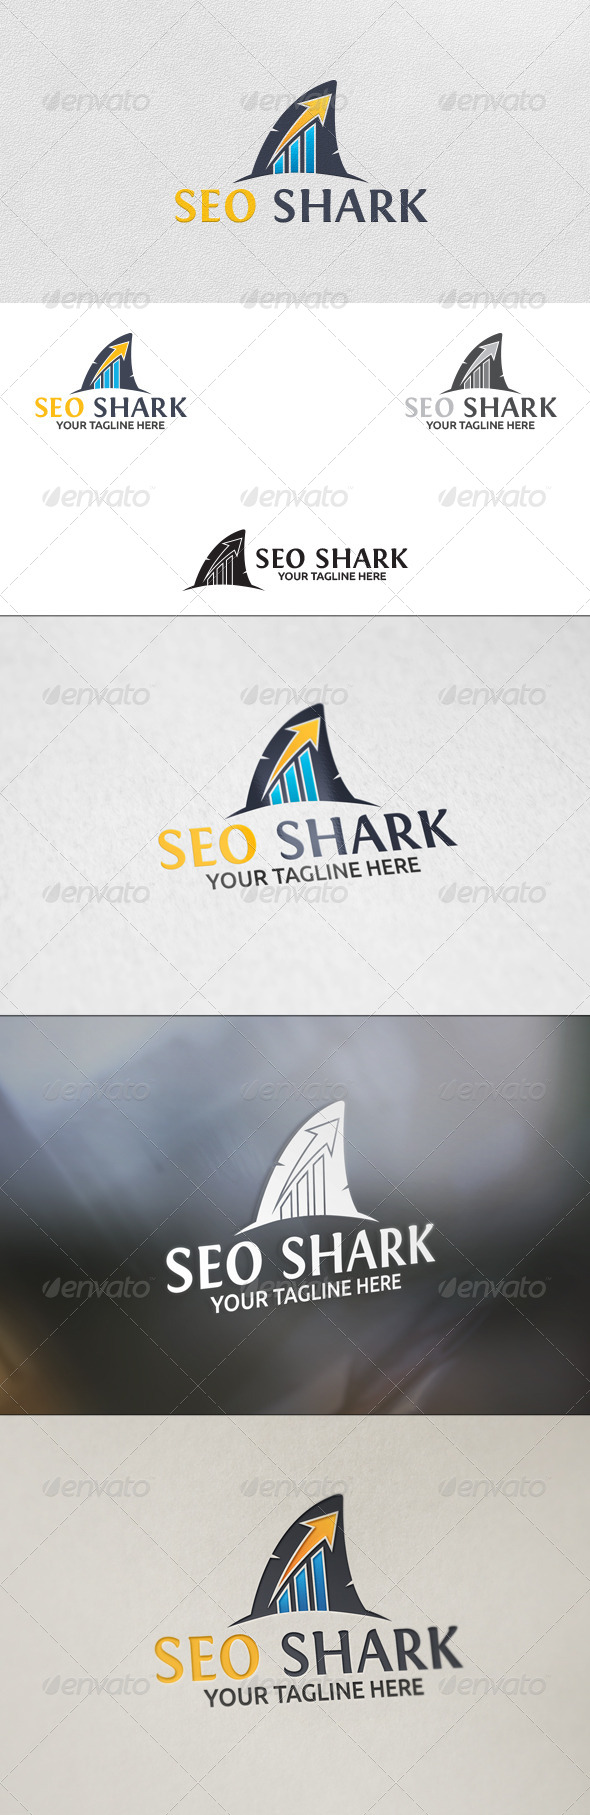 GraphicRiver SEO Shark Logo Template 5826648